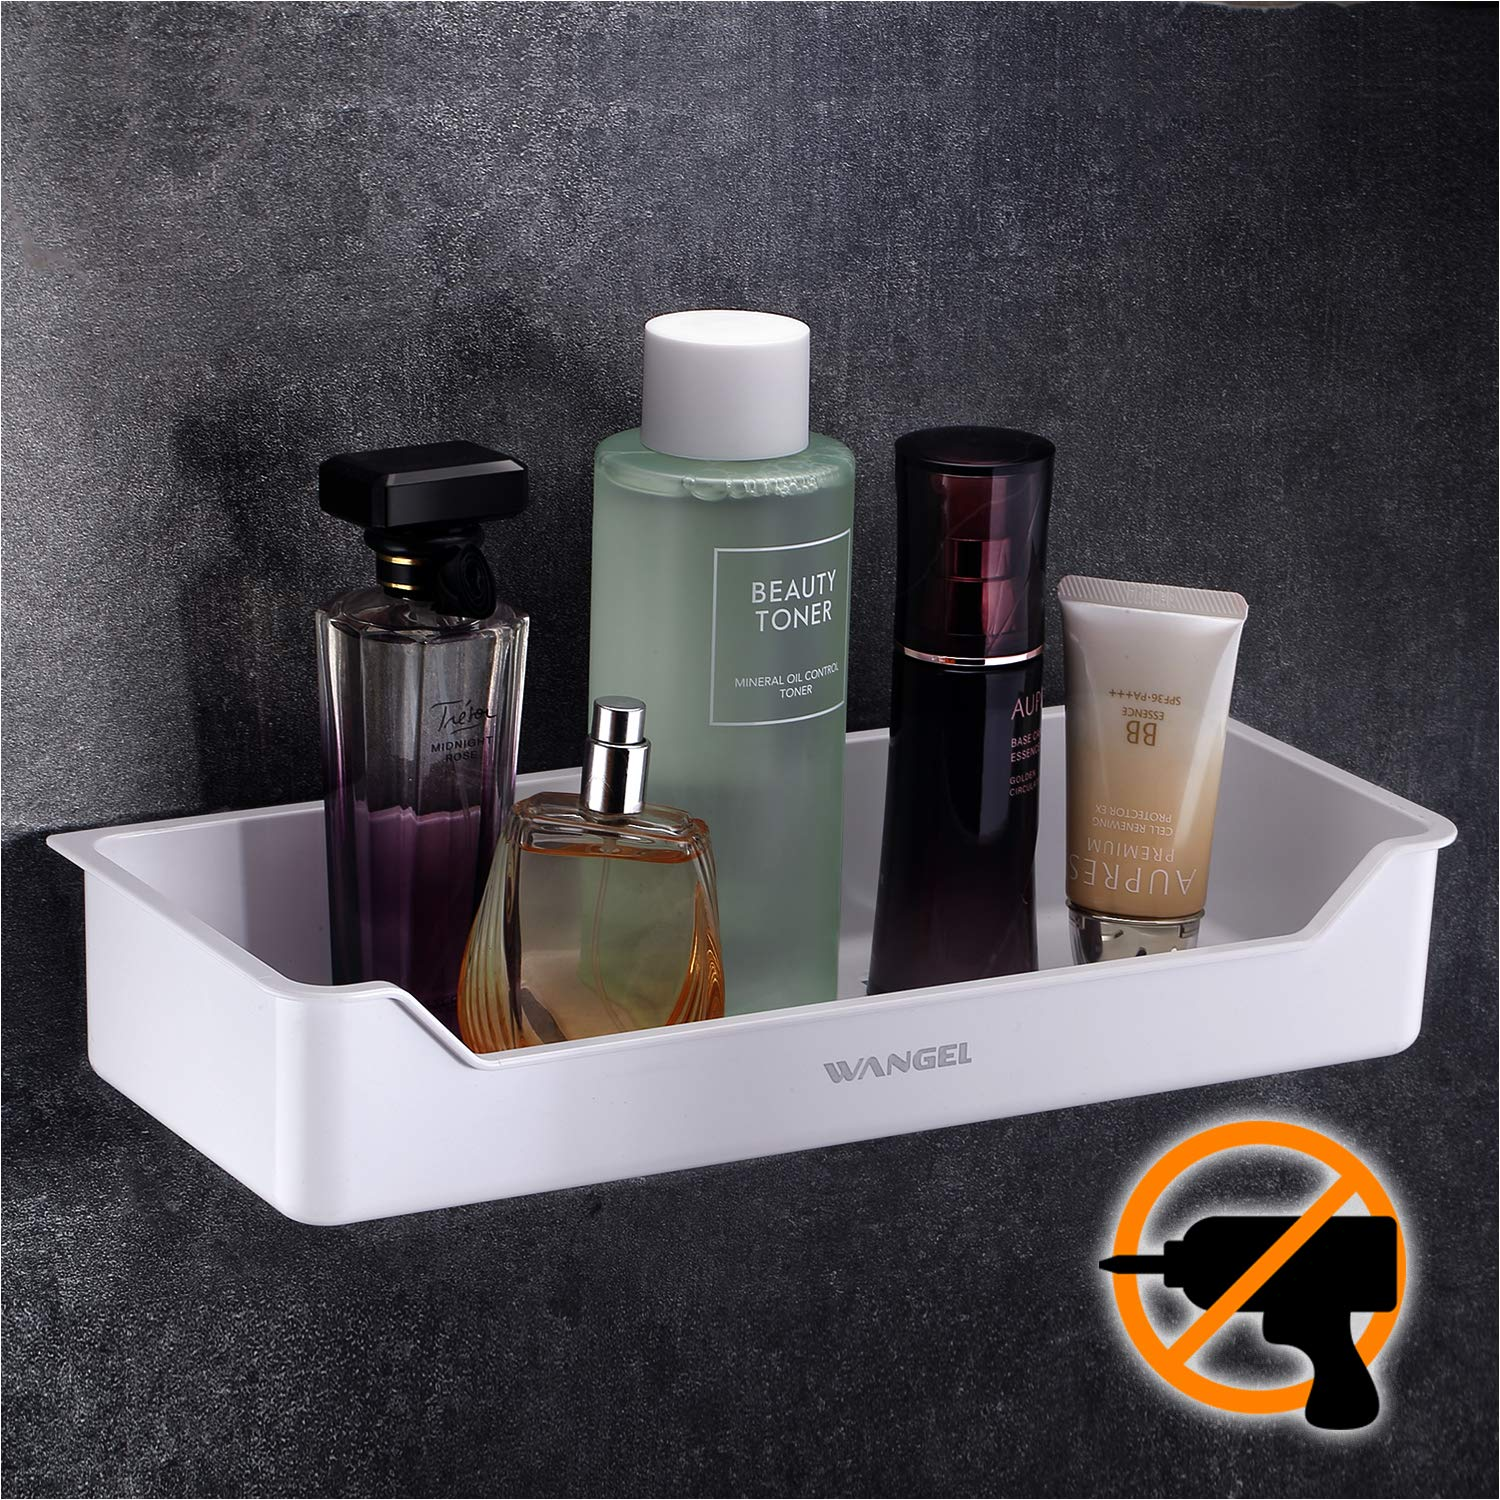 Wangel Shower Storage Basket Shelf for Bathroom and Kitchen, Traceless Adhesives Tape Stickers, No Drilling, ABS Plastic